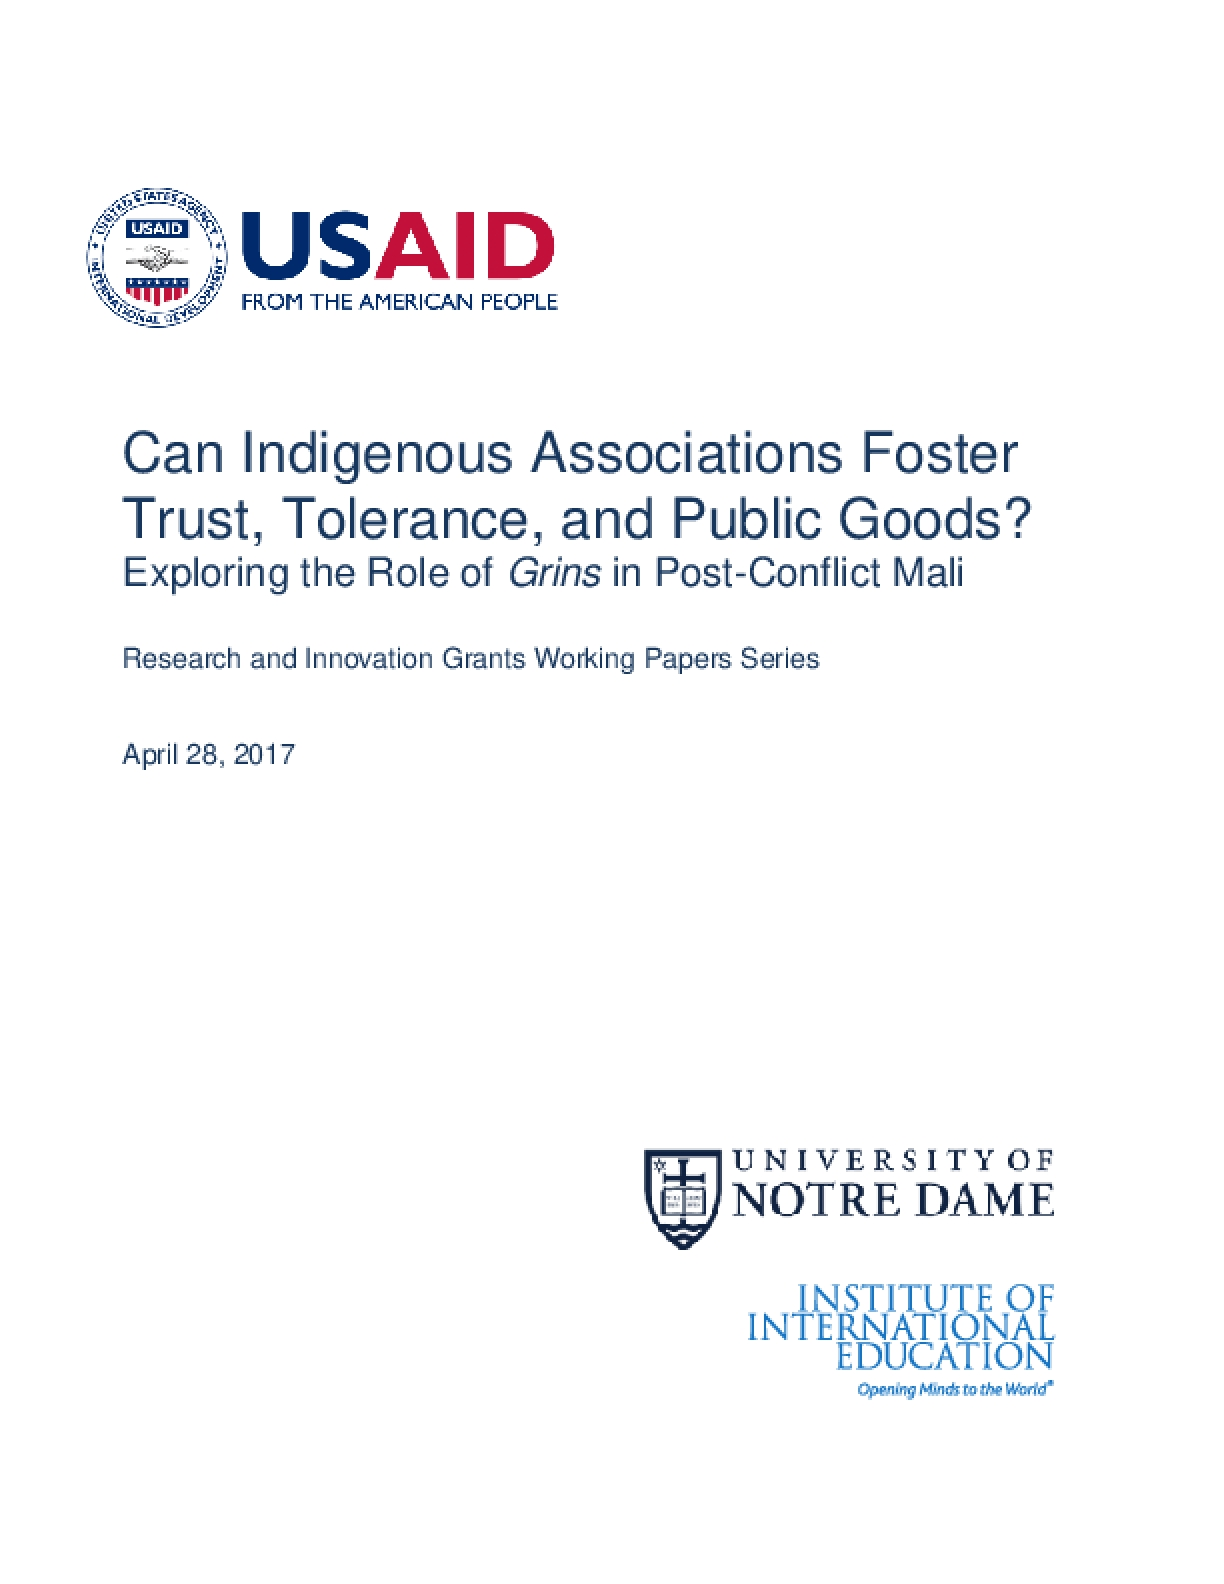 Can Indigenous Associations Foster Trust, Tolerance, and Public Goods? Exploring the Role of Grins in Post-Conflict Mali